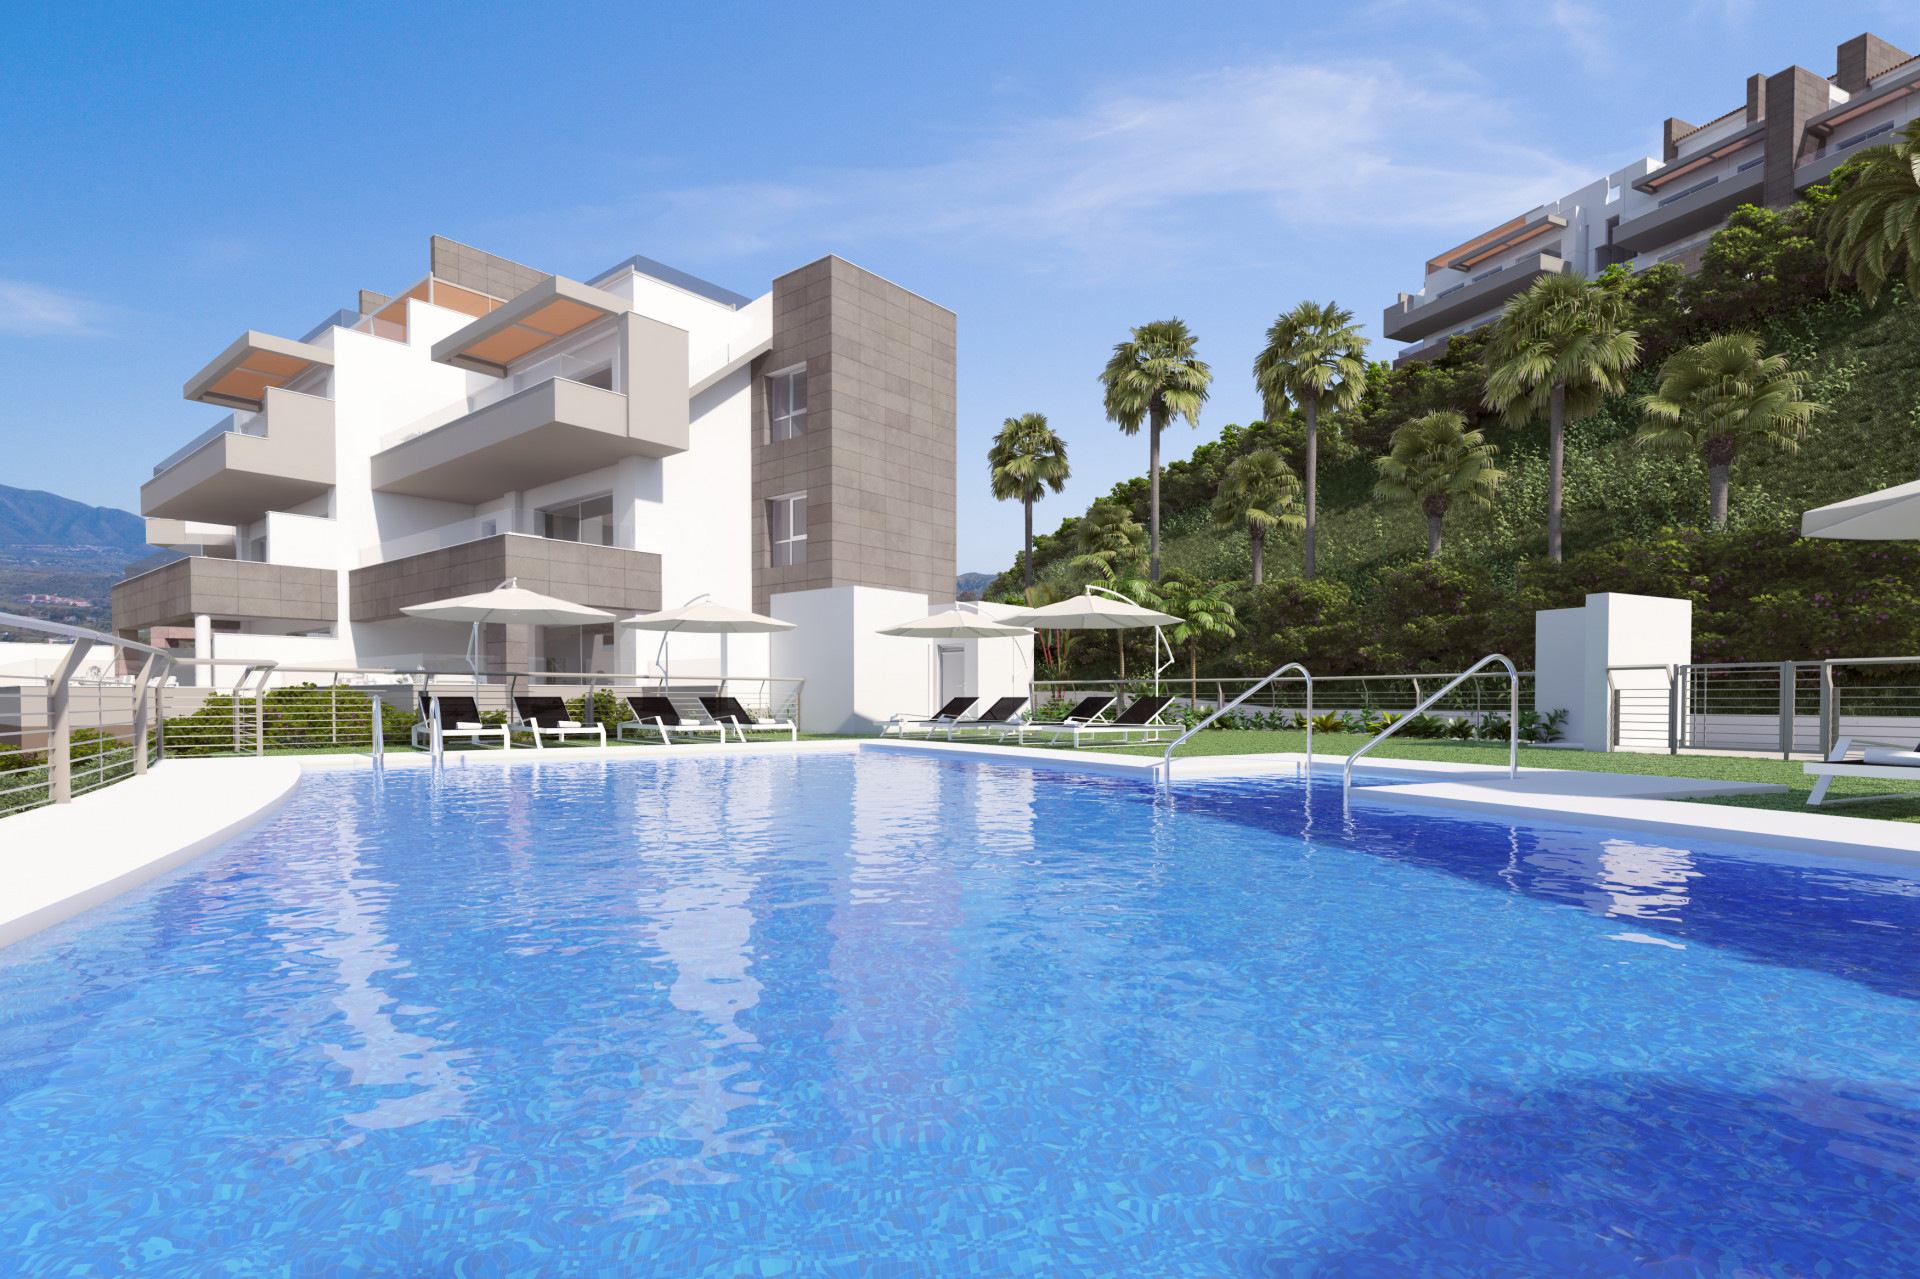 New contemporary style apartments for sale in Mijas Costa